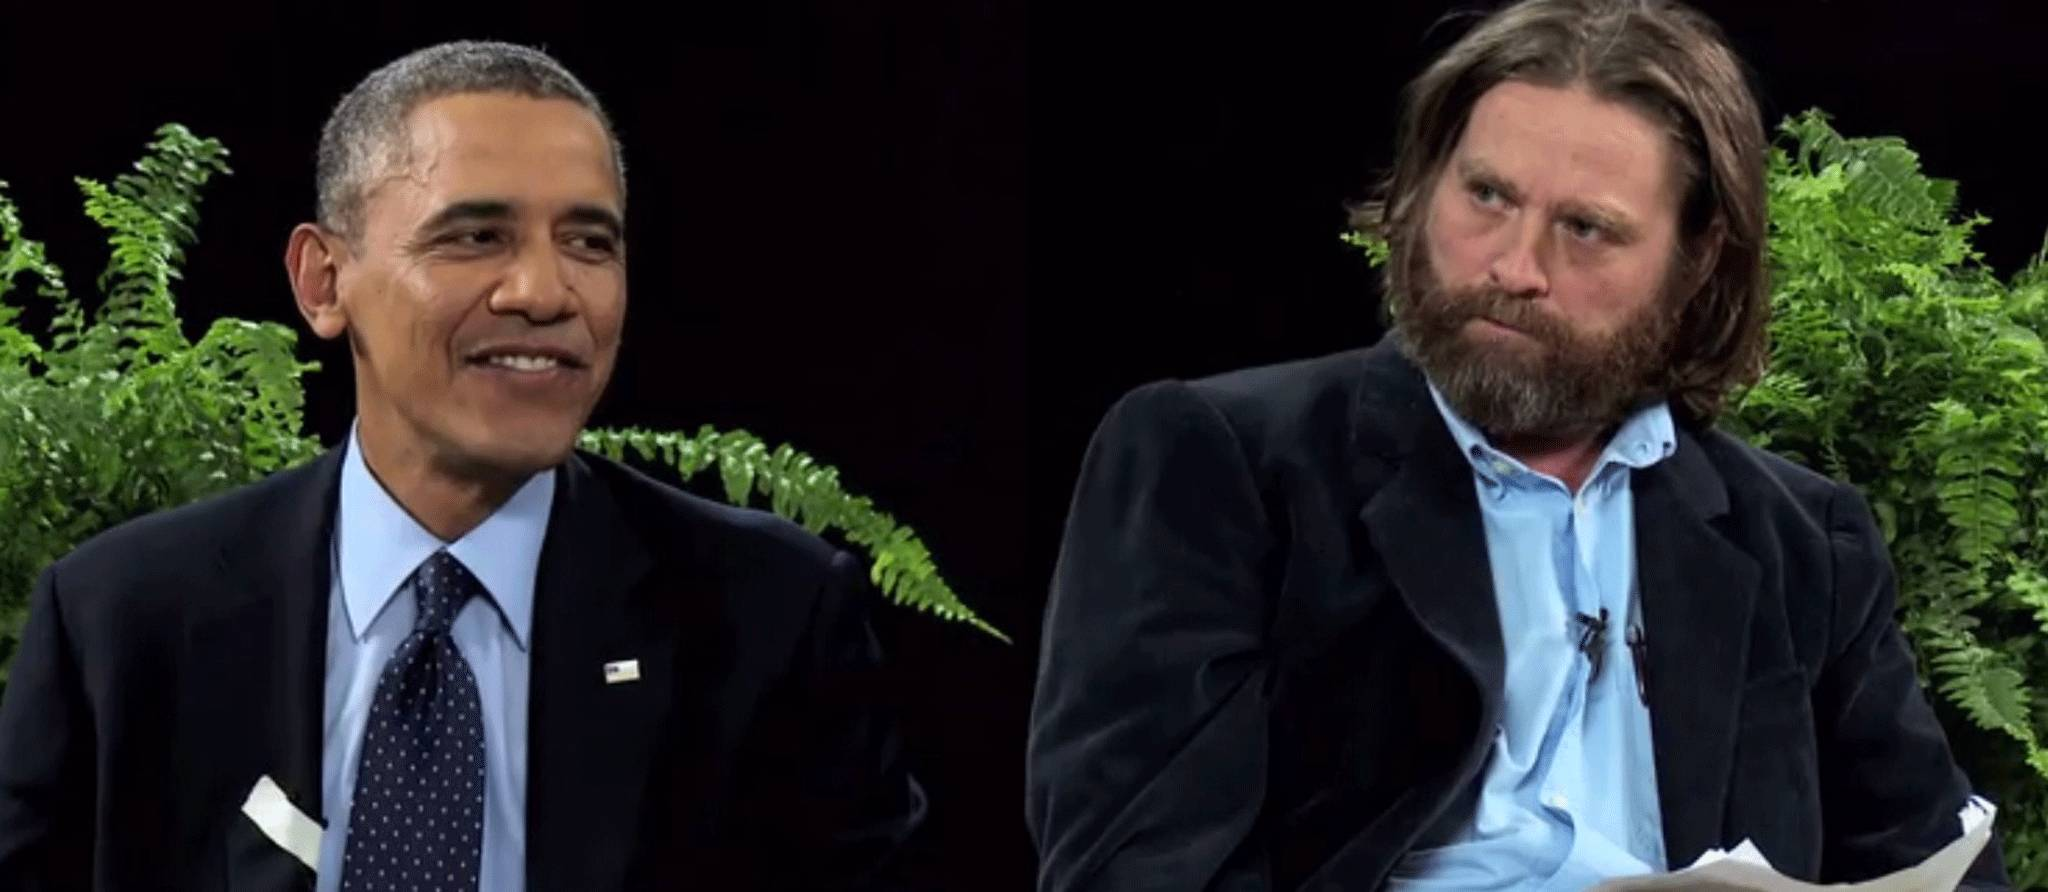 between-two-ferns_JC.jpg